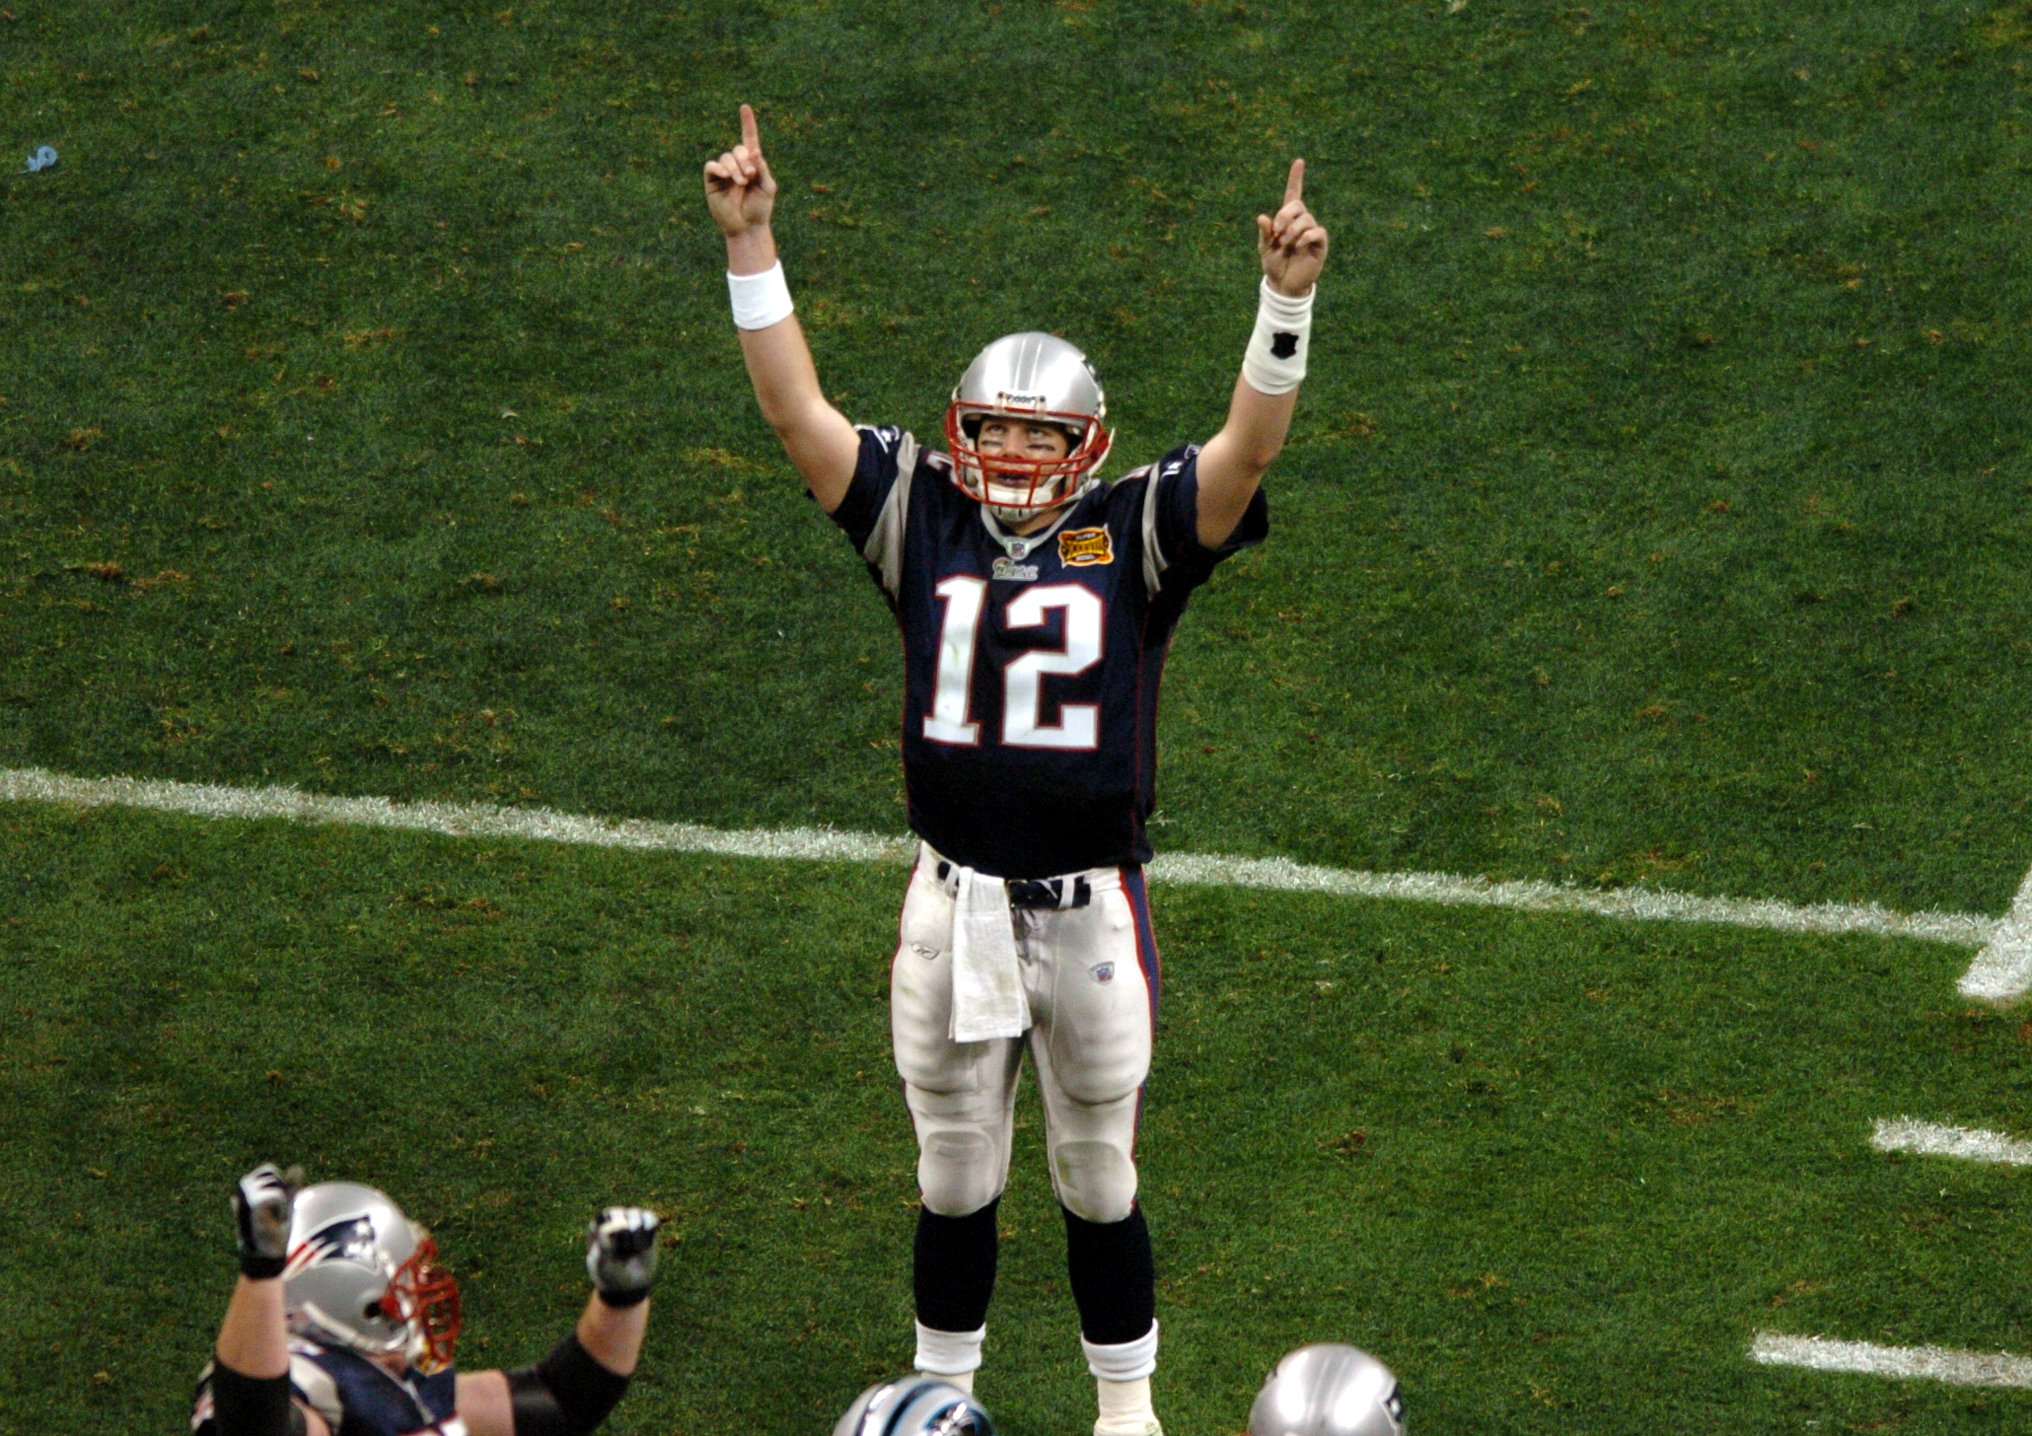 HOUSTON, TX - FEBRUARY 1: New England Patriots quarterback Tom Brady celebrates after touchdown pass to Deion Branch during Super Bowl XXXVIII against the Carolina Panthers. (Photo by Matthew J. Lee/The Boston Globe via Getty Images)